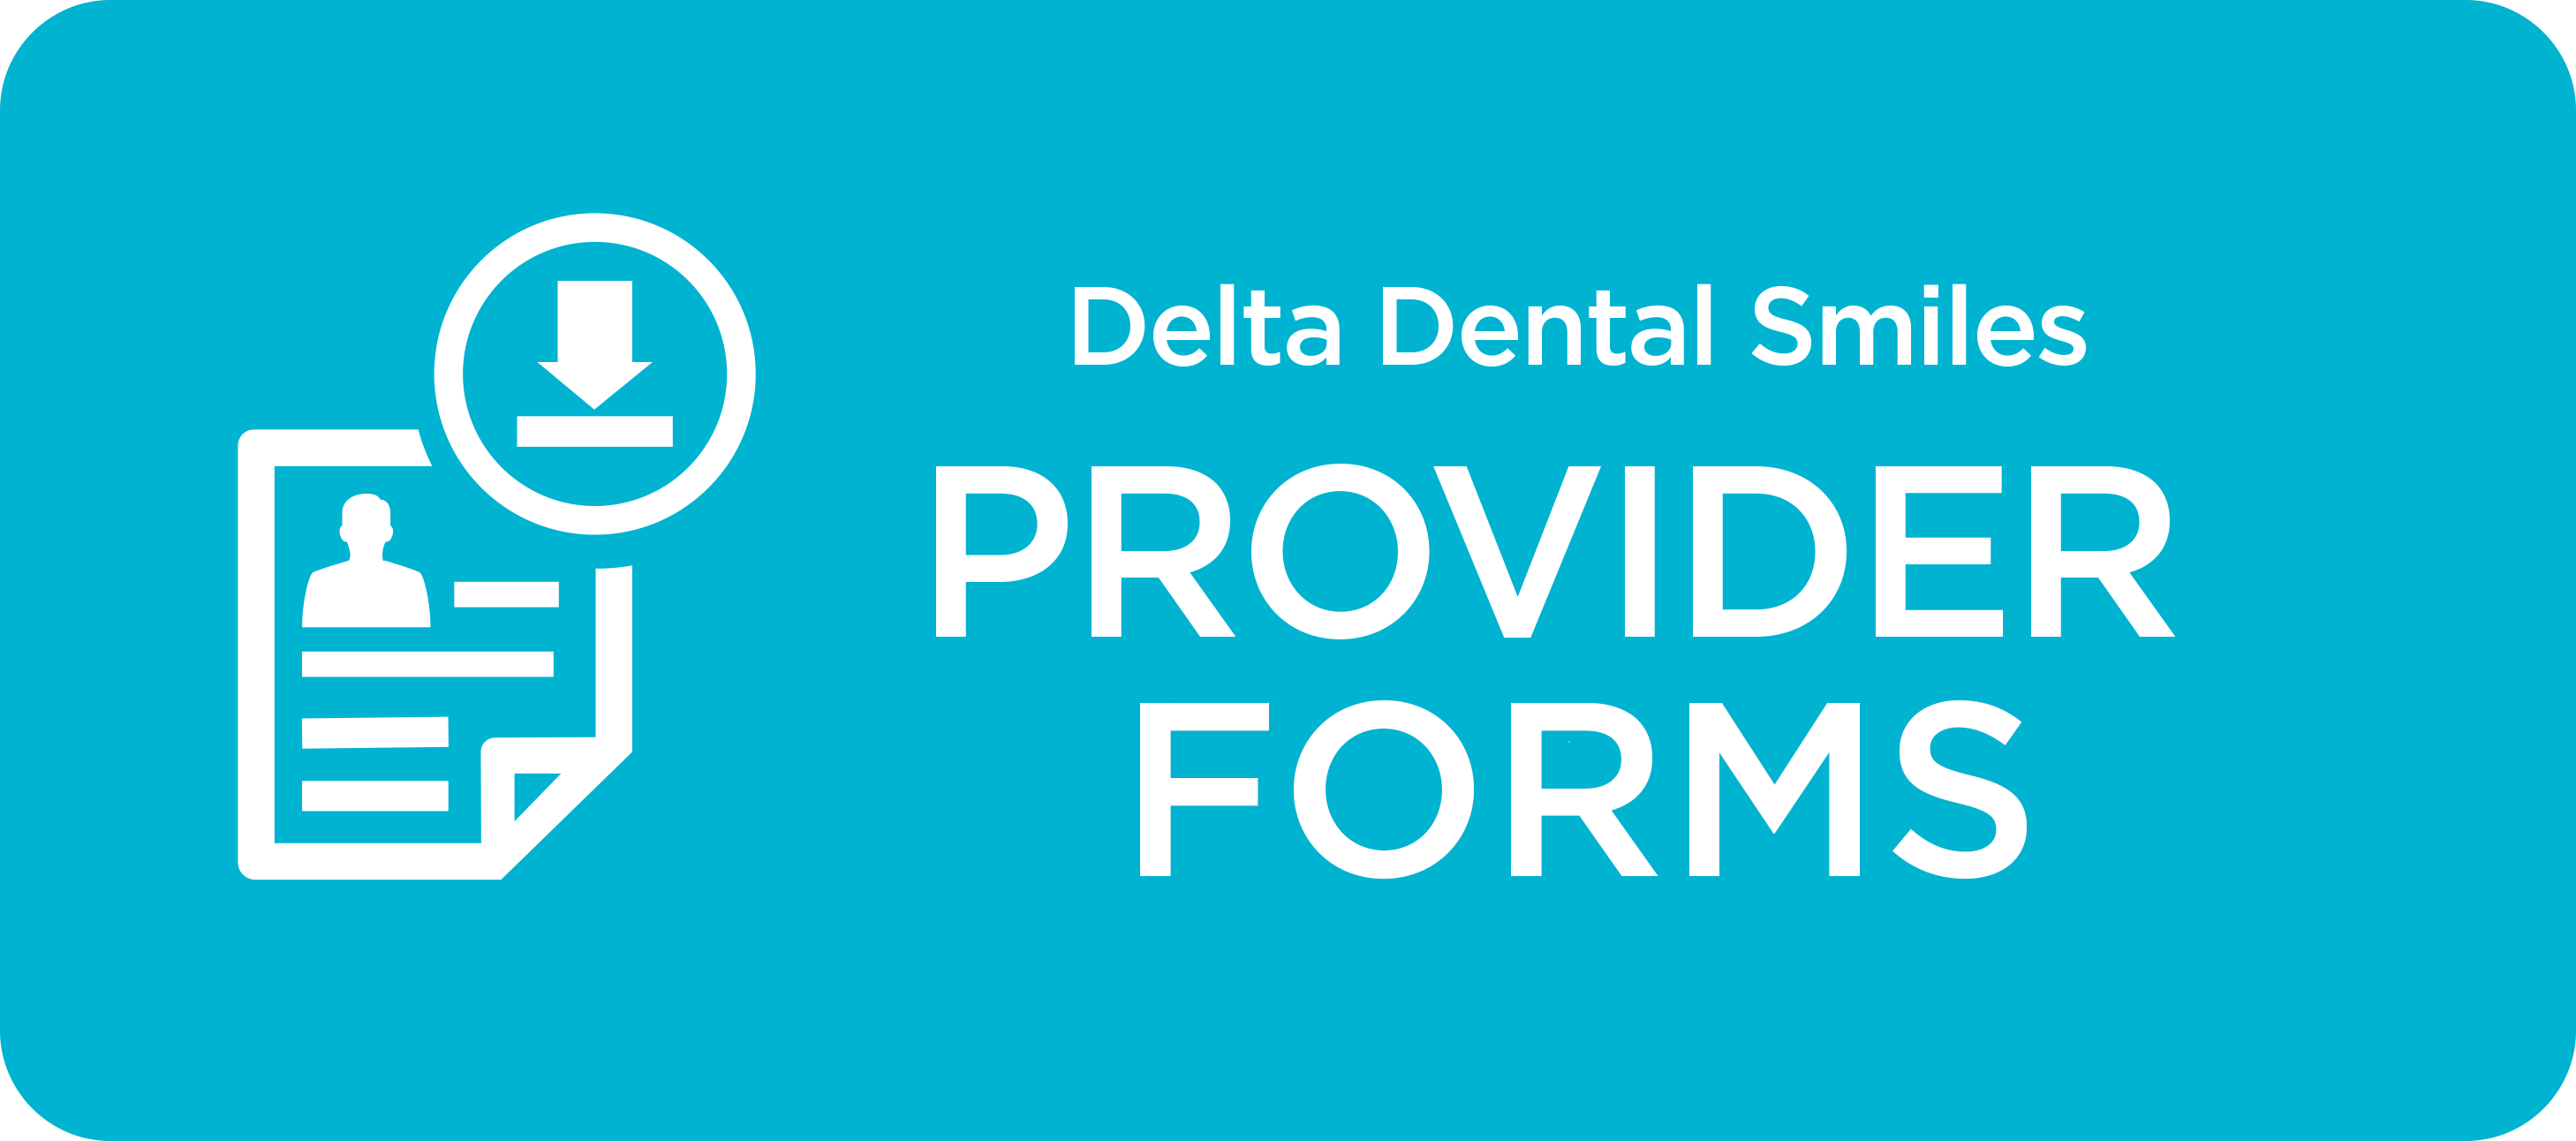 Providers Delta Dental Smiles For Adults